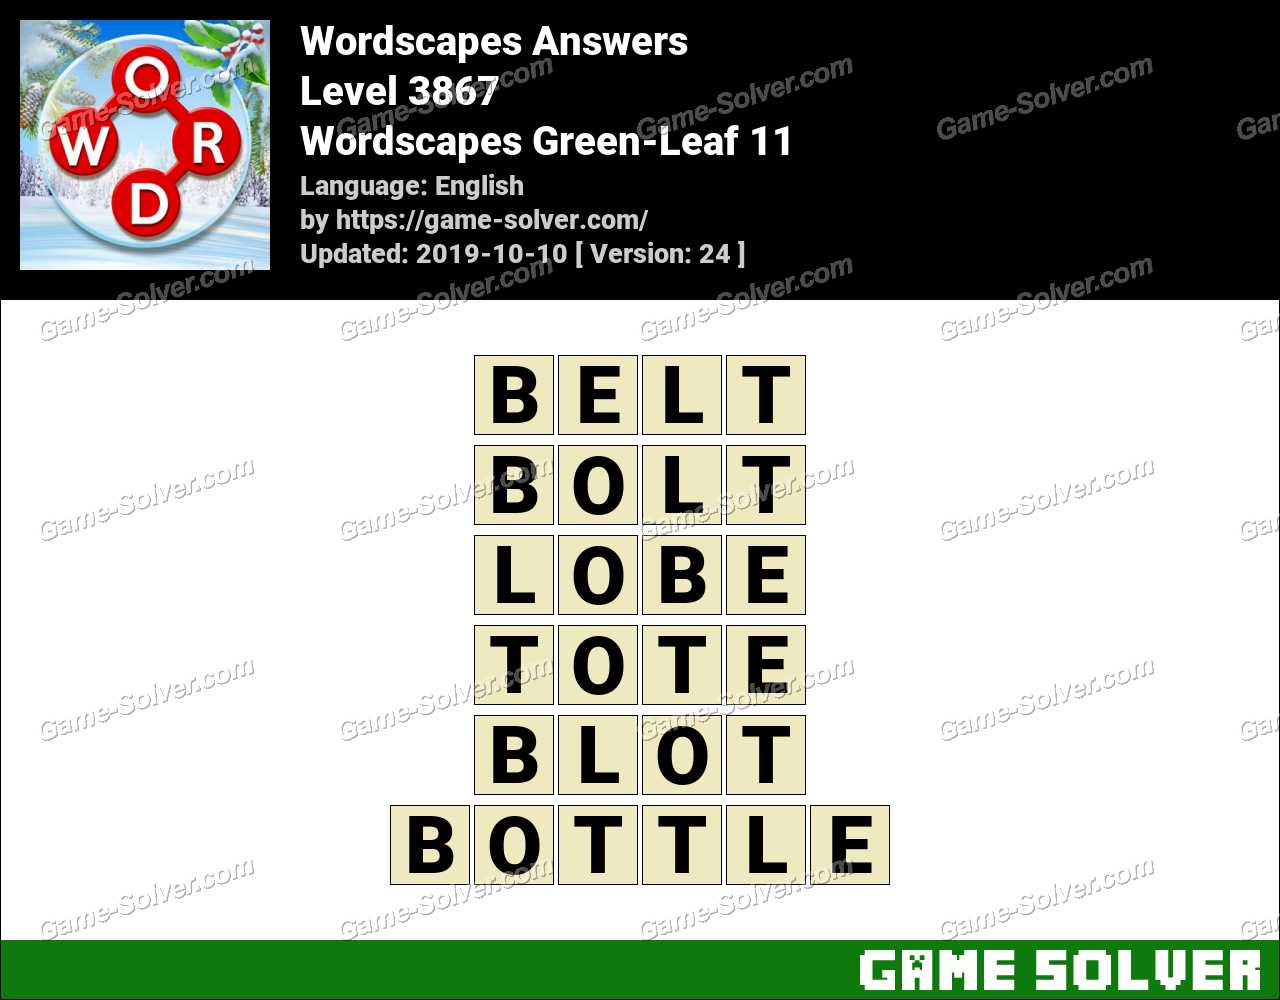 Wordscapes Green-Leaf 11 Answers